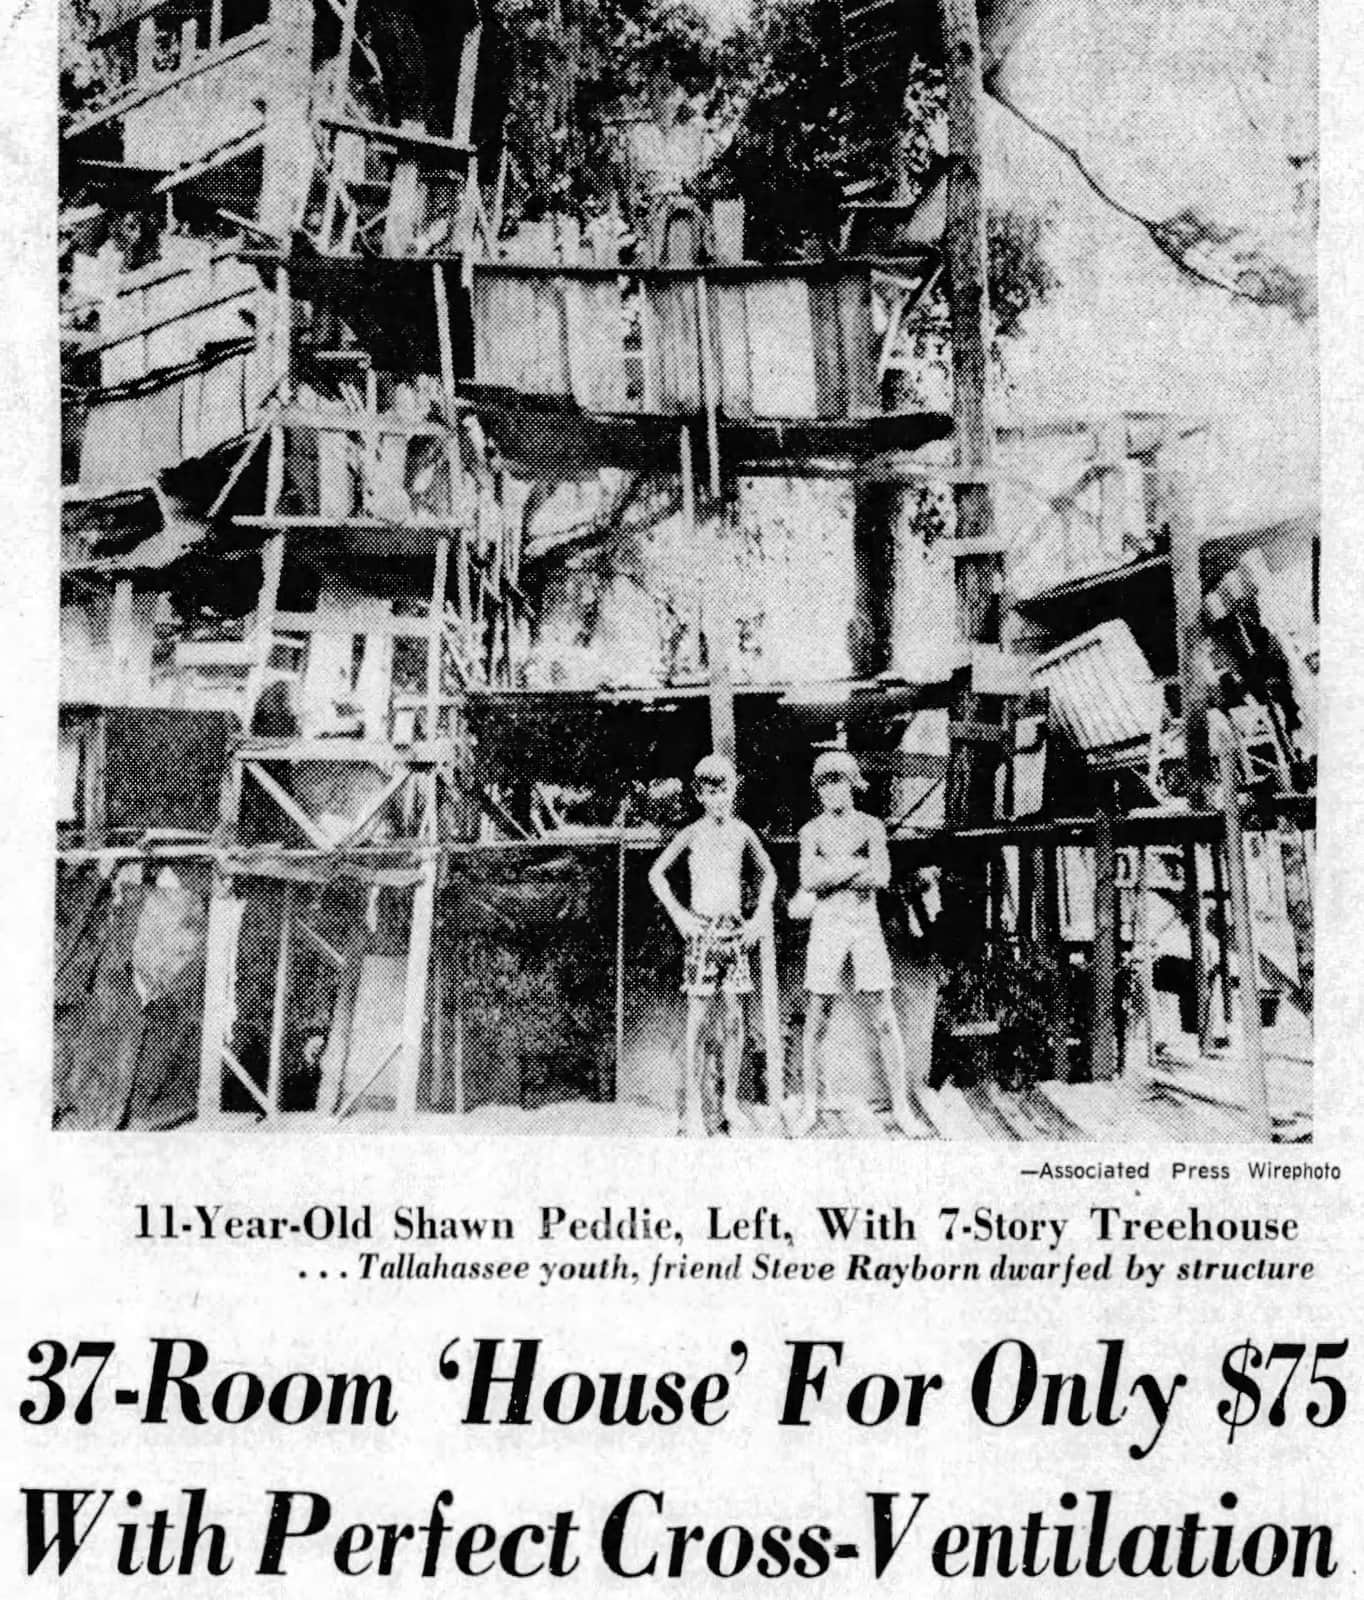 A huge tree house in Florida built by Shawn Peddie and friends in Florida (1973)